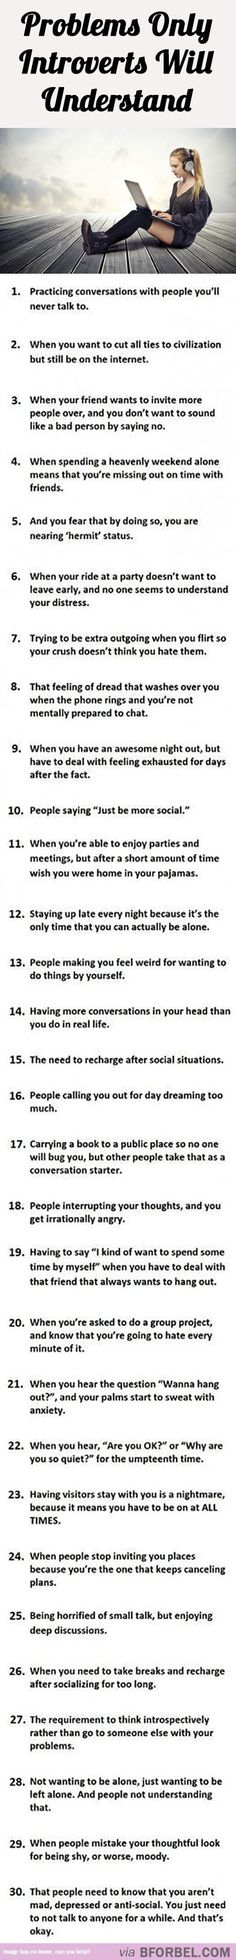 This is my life in a nutshell - 30 Problems Only Introverts Will Understand.